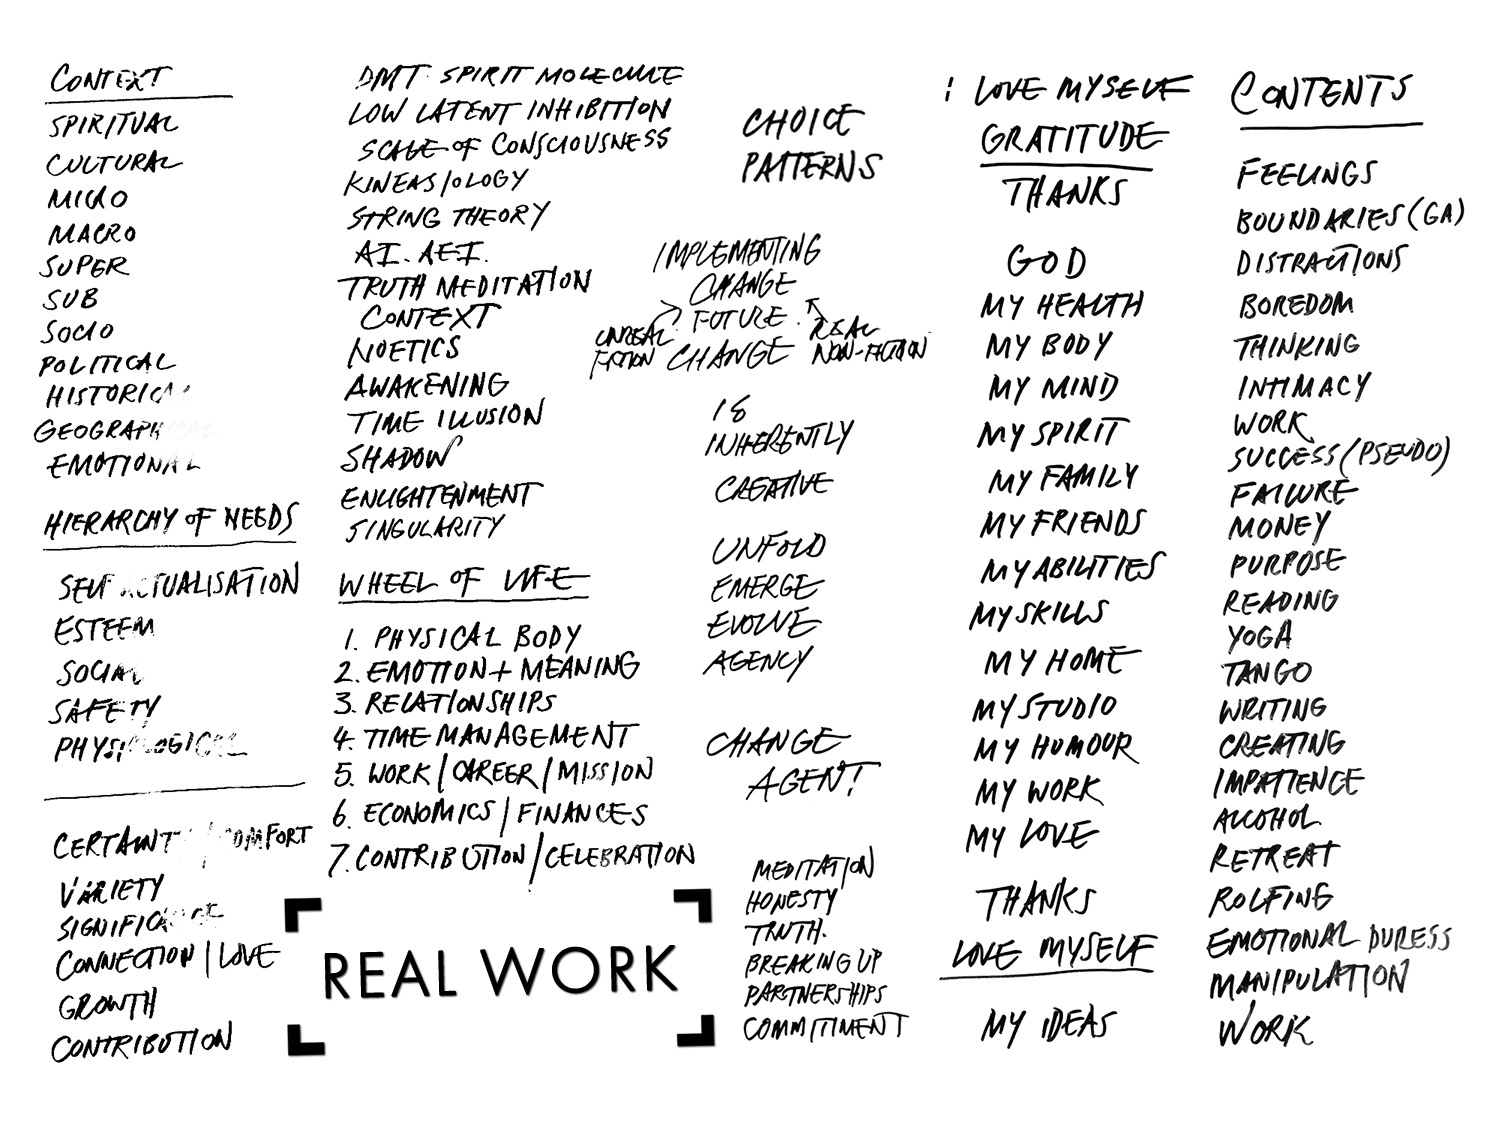 Pre-SLC whiteboard Inner Work and Real Work attempts to work my way through a difficult time. It's so interesting to see now how important this period was for me and my Significant Life Change. To the right is the DRAFT contents of a book project I was obviously planning. Can you guess what that eventually turned into? Of note is the phrase in the middle of this image 'IMPLEMENTING CHANGE IS INHERENTLY CREATIVE'.